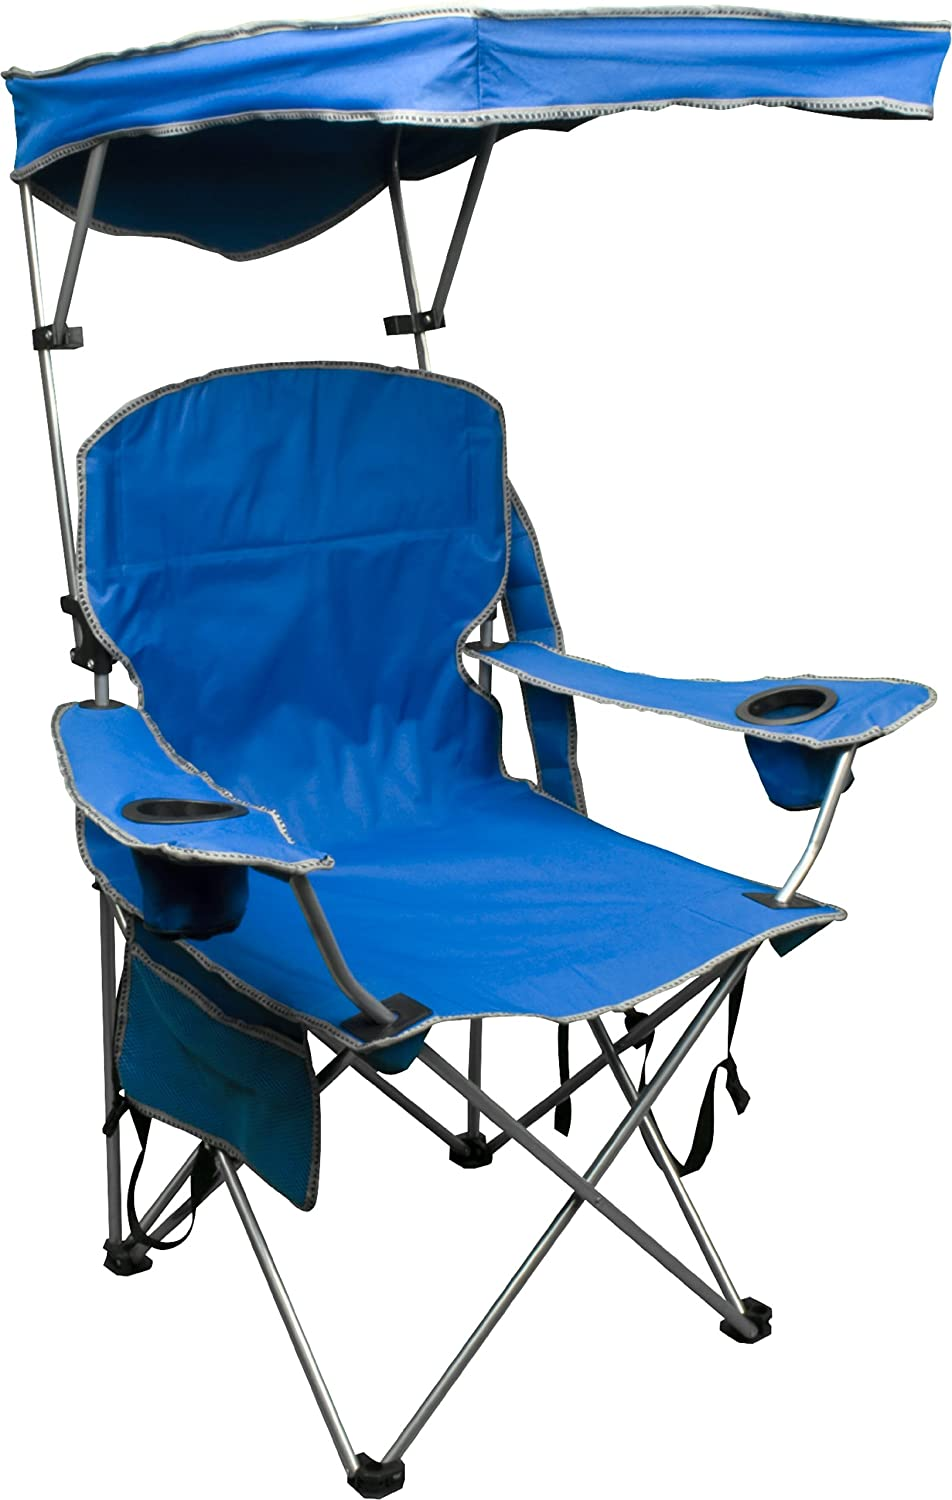 Outdoor chair camping - Quik Shade Adjustable Canopy Folding Camp Chair Royal Blue Amazon Co Uk Sports Outdoors